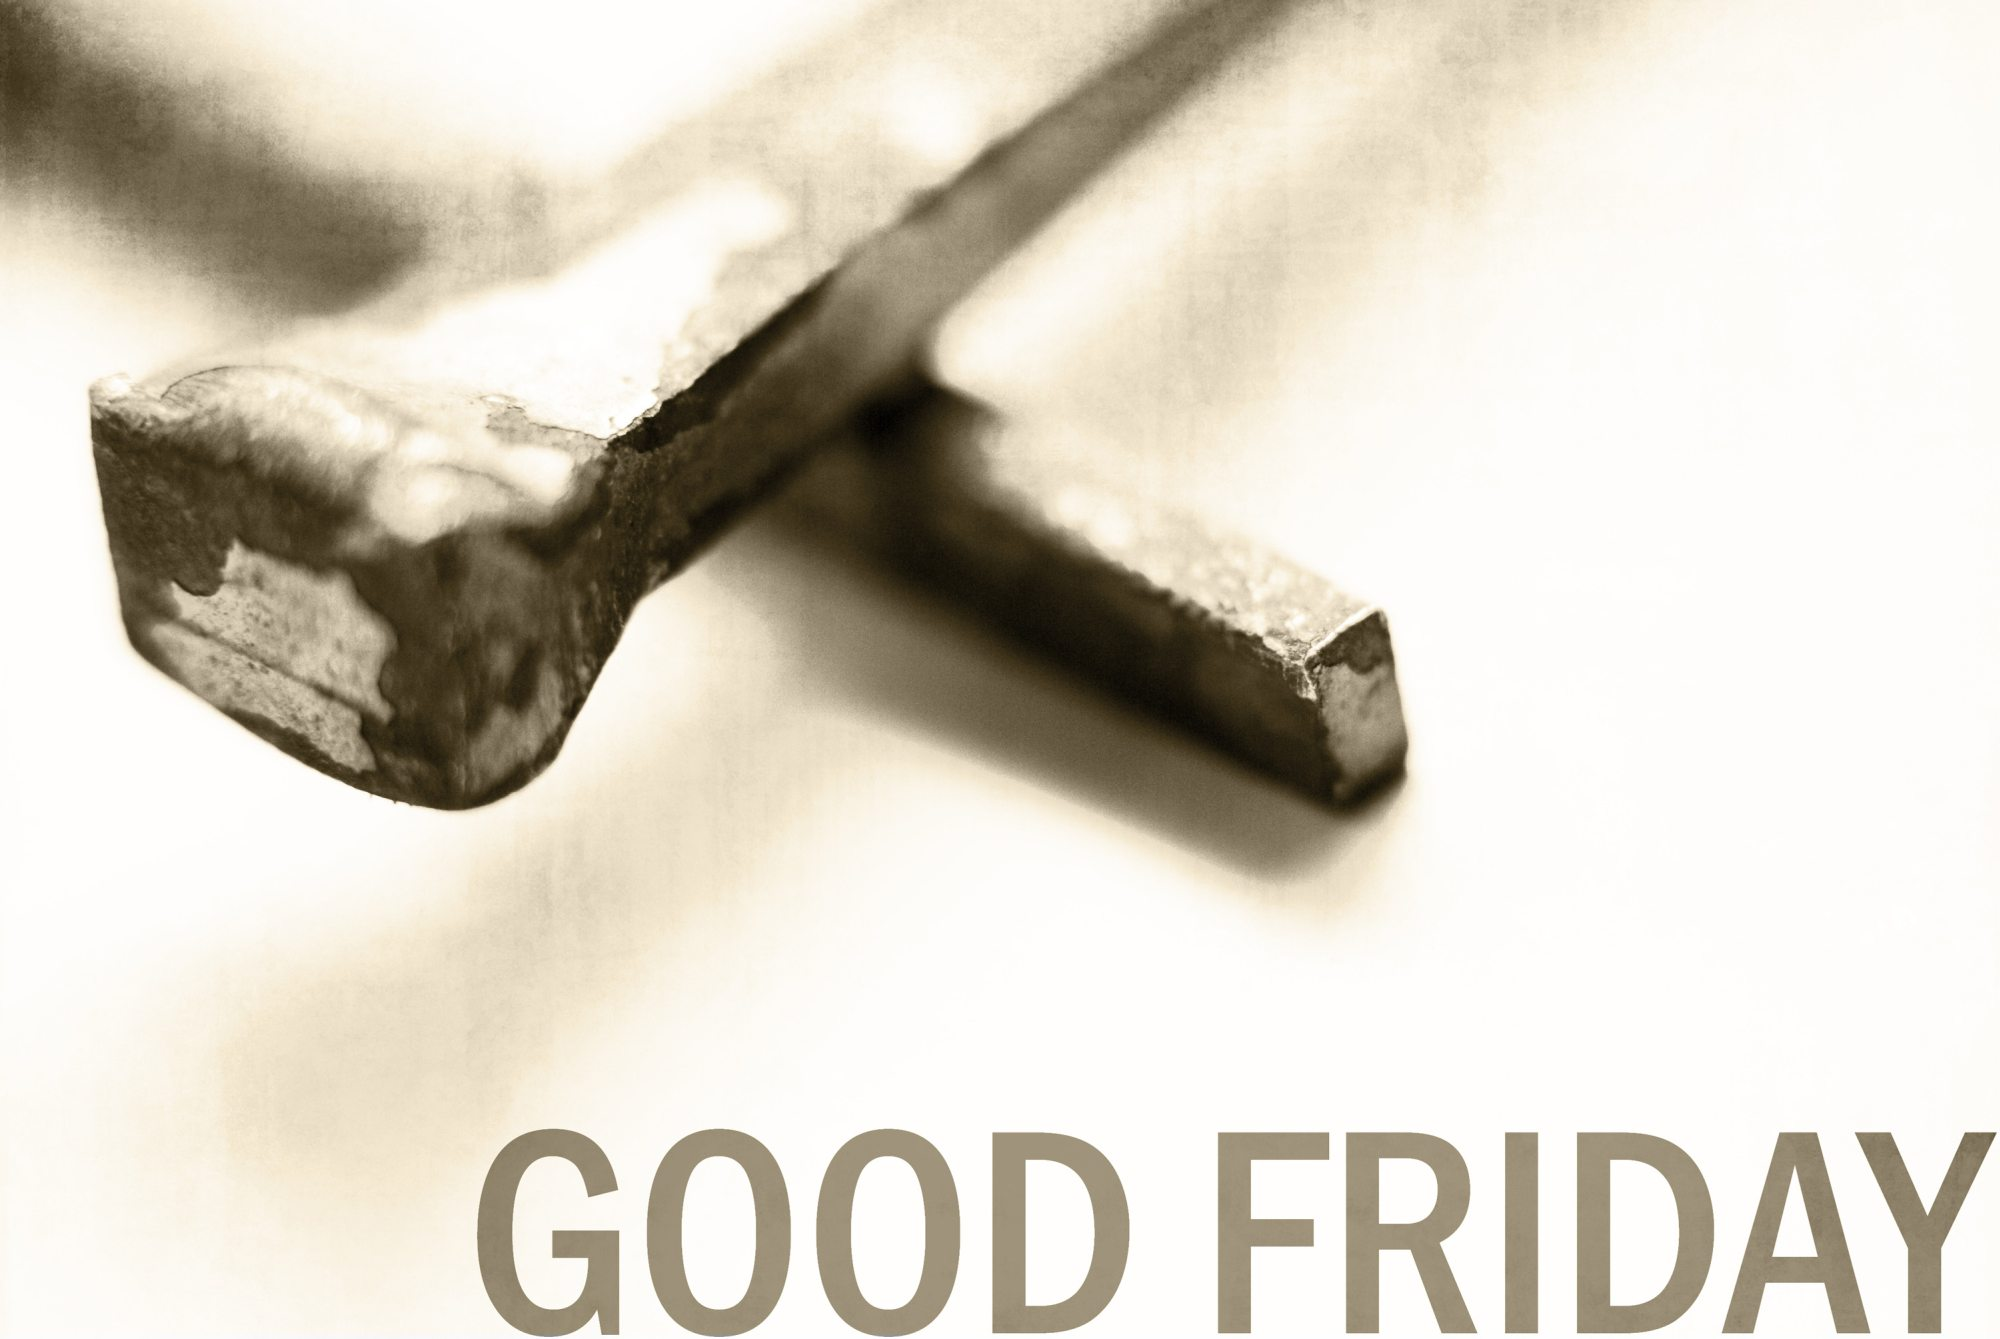 Happy Friday Images &  Pictures